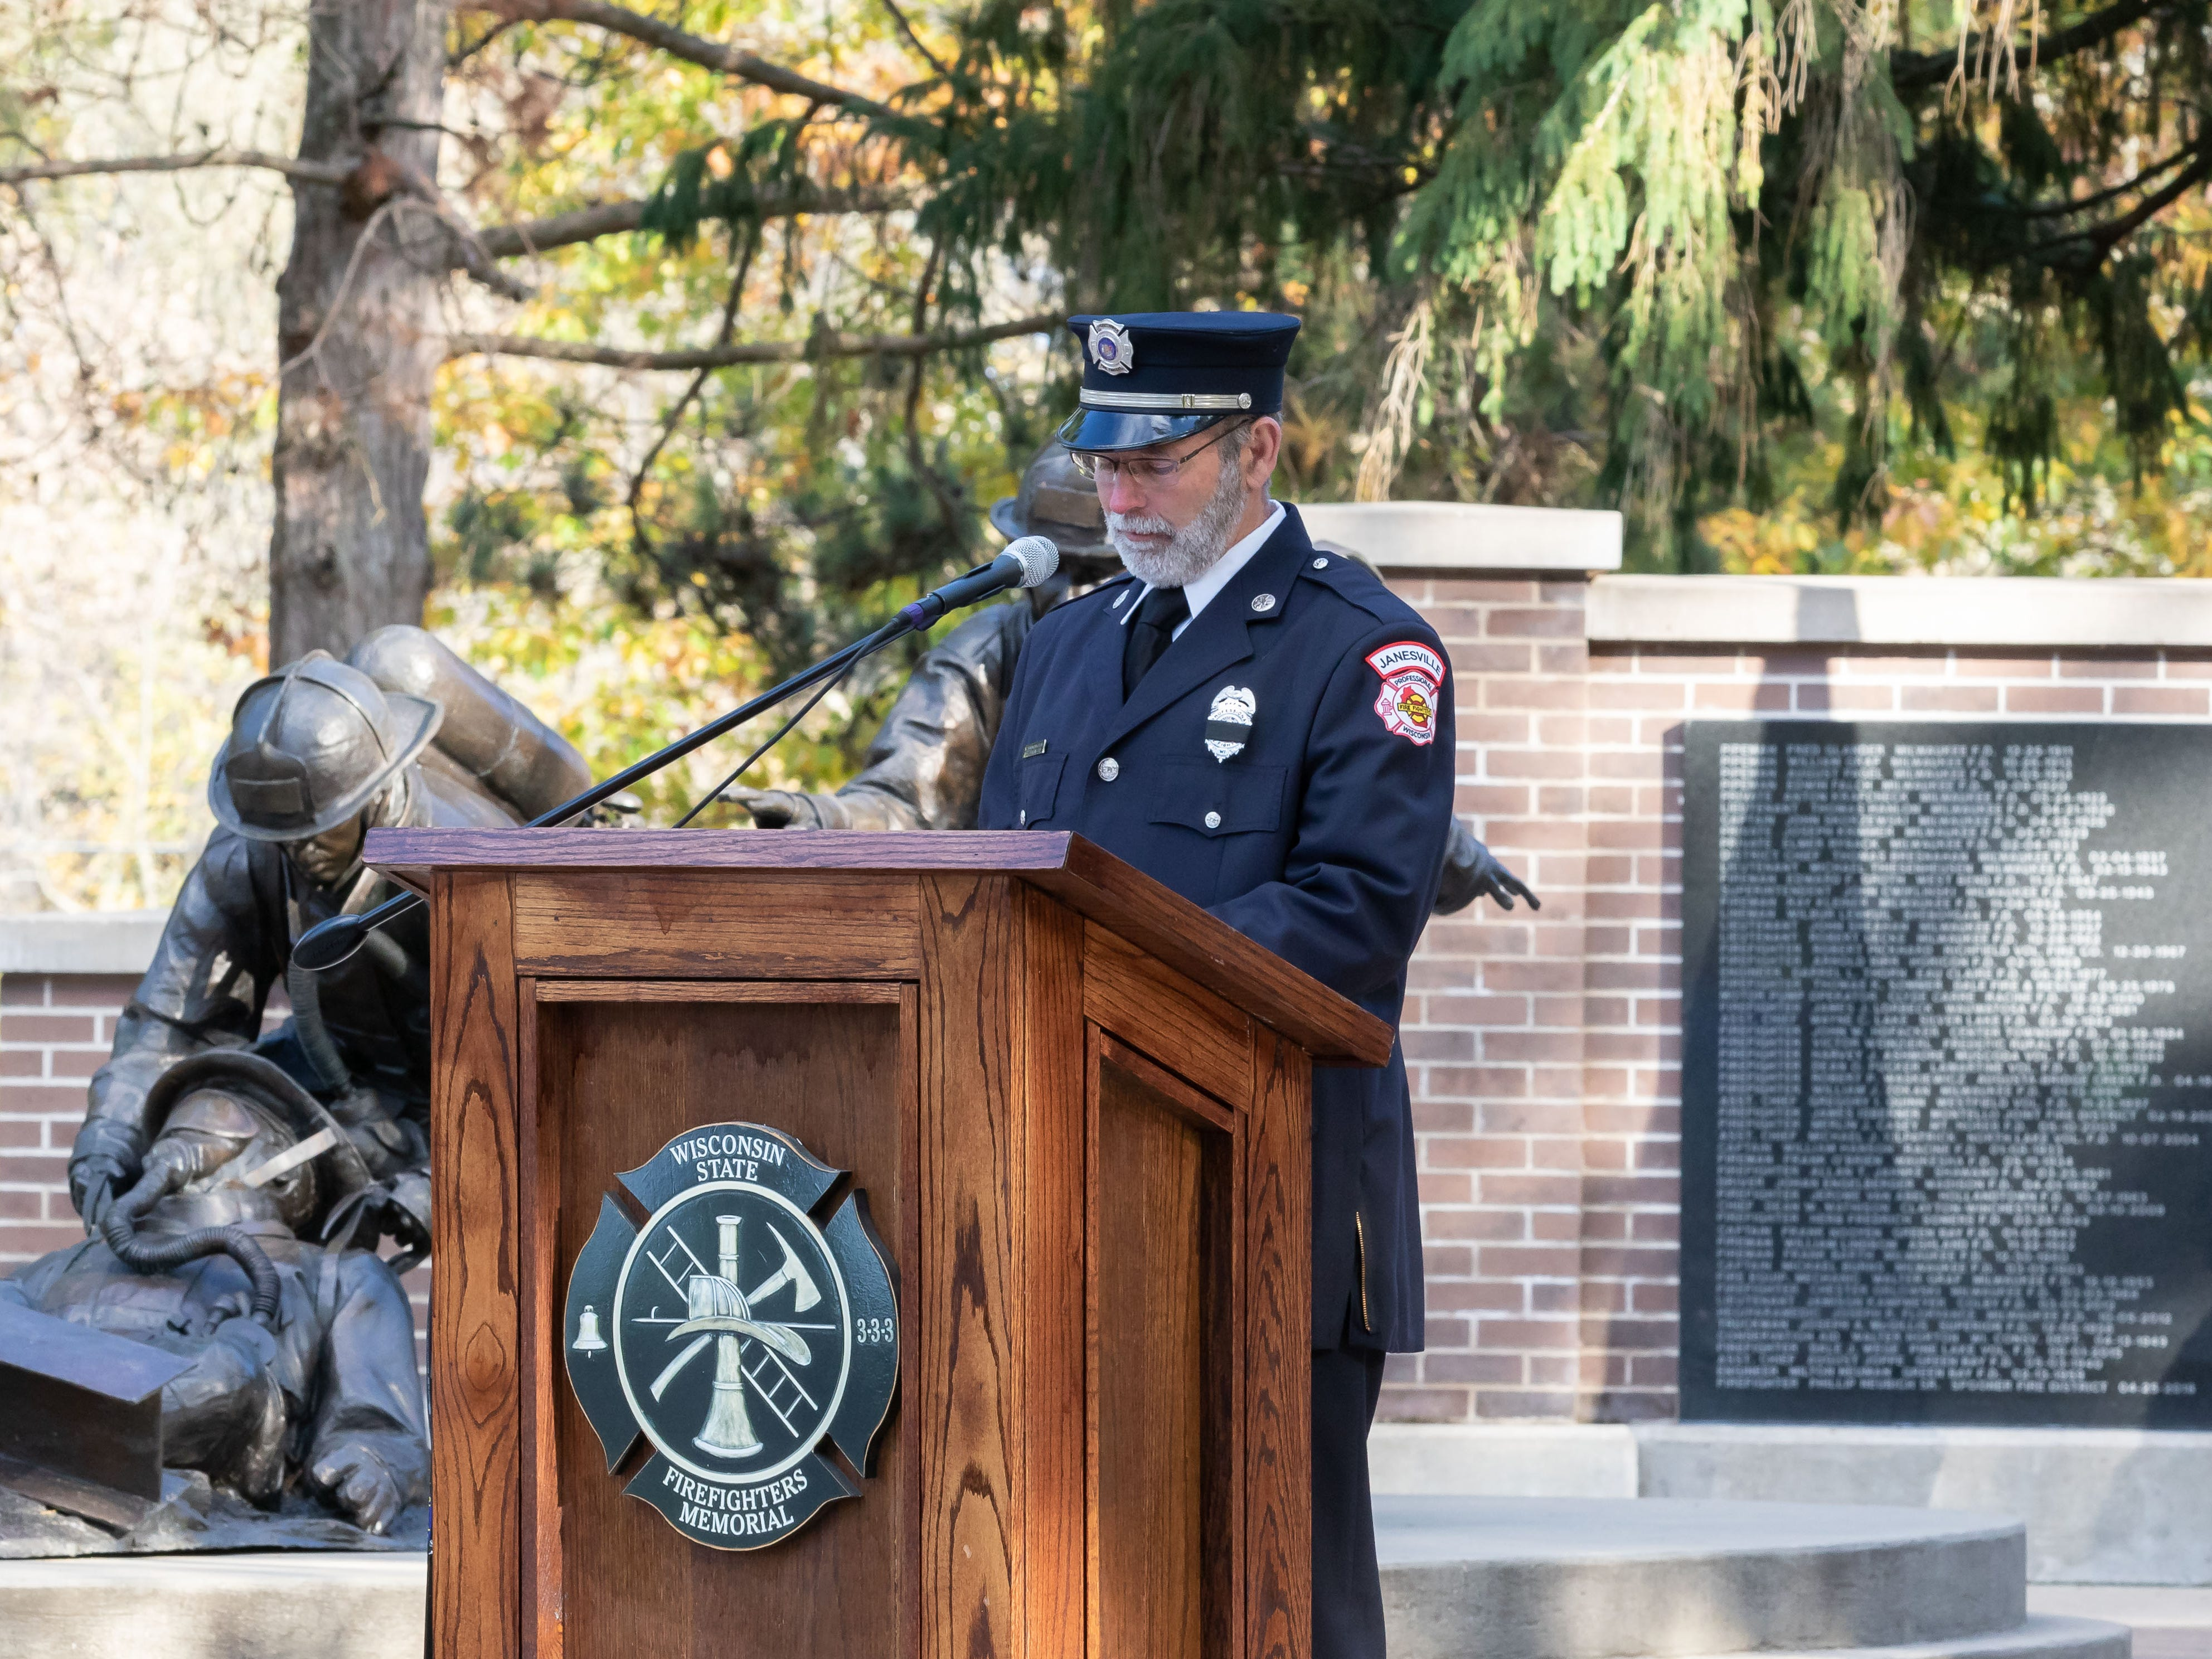 Fallen firefighters from Wisconsin were honored during the annual Final Alarm and Roll Call Ceremony on Saturday, Oct. 13, 2018, at the Wisconsin State Firefighters Memorial in Wisconsin Rapids.